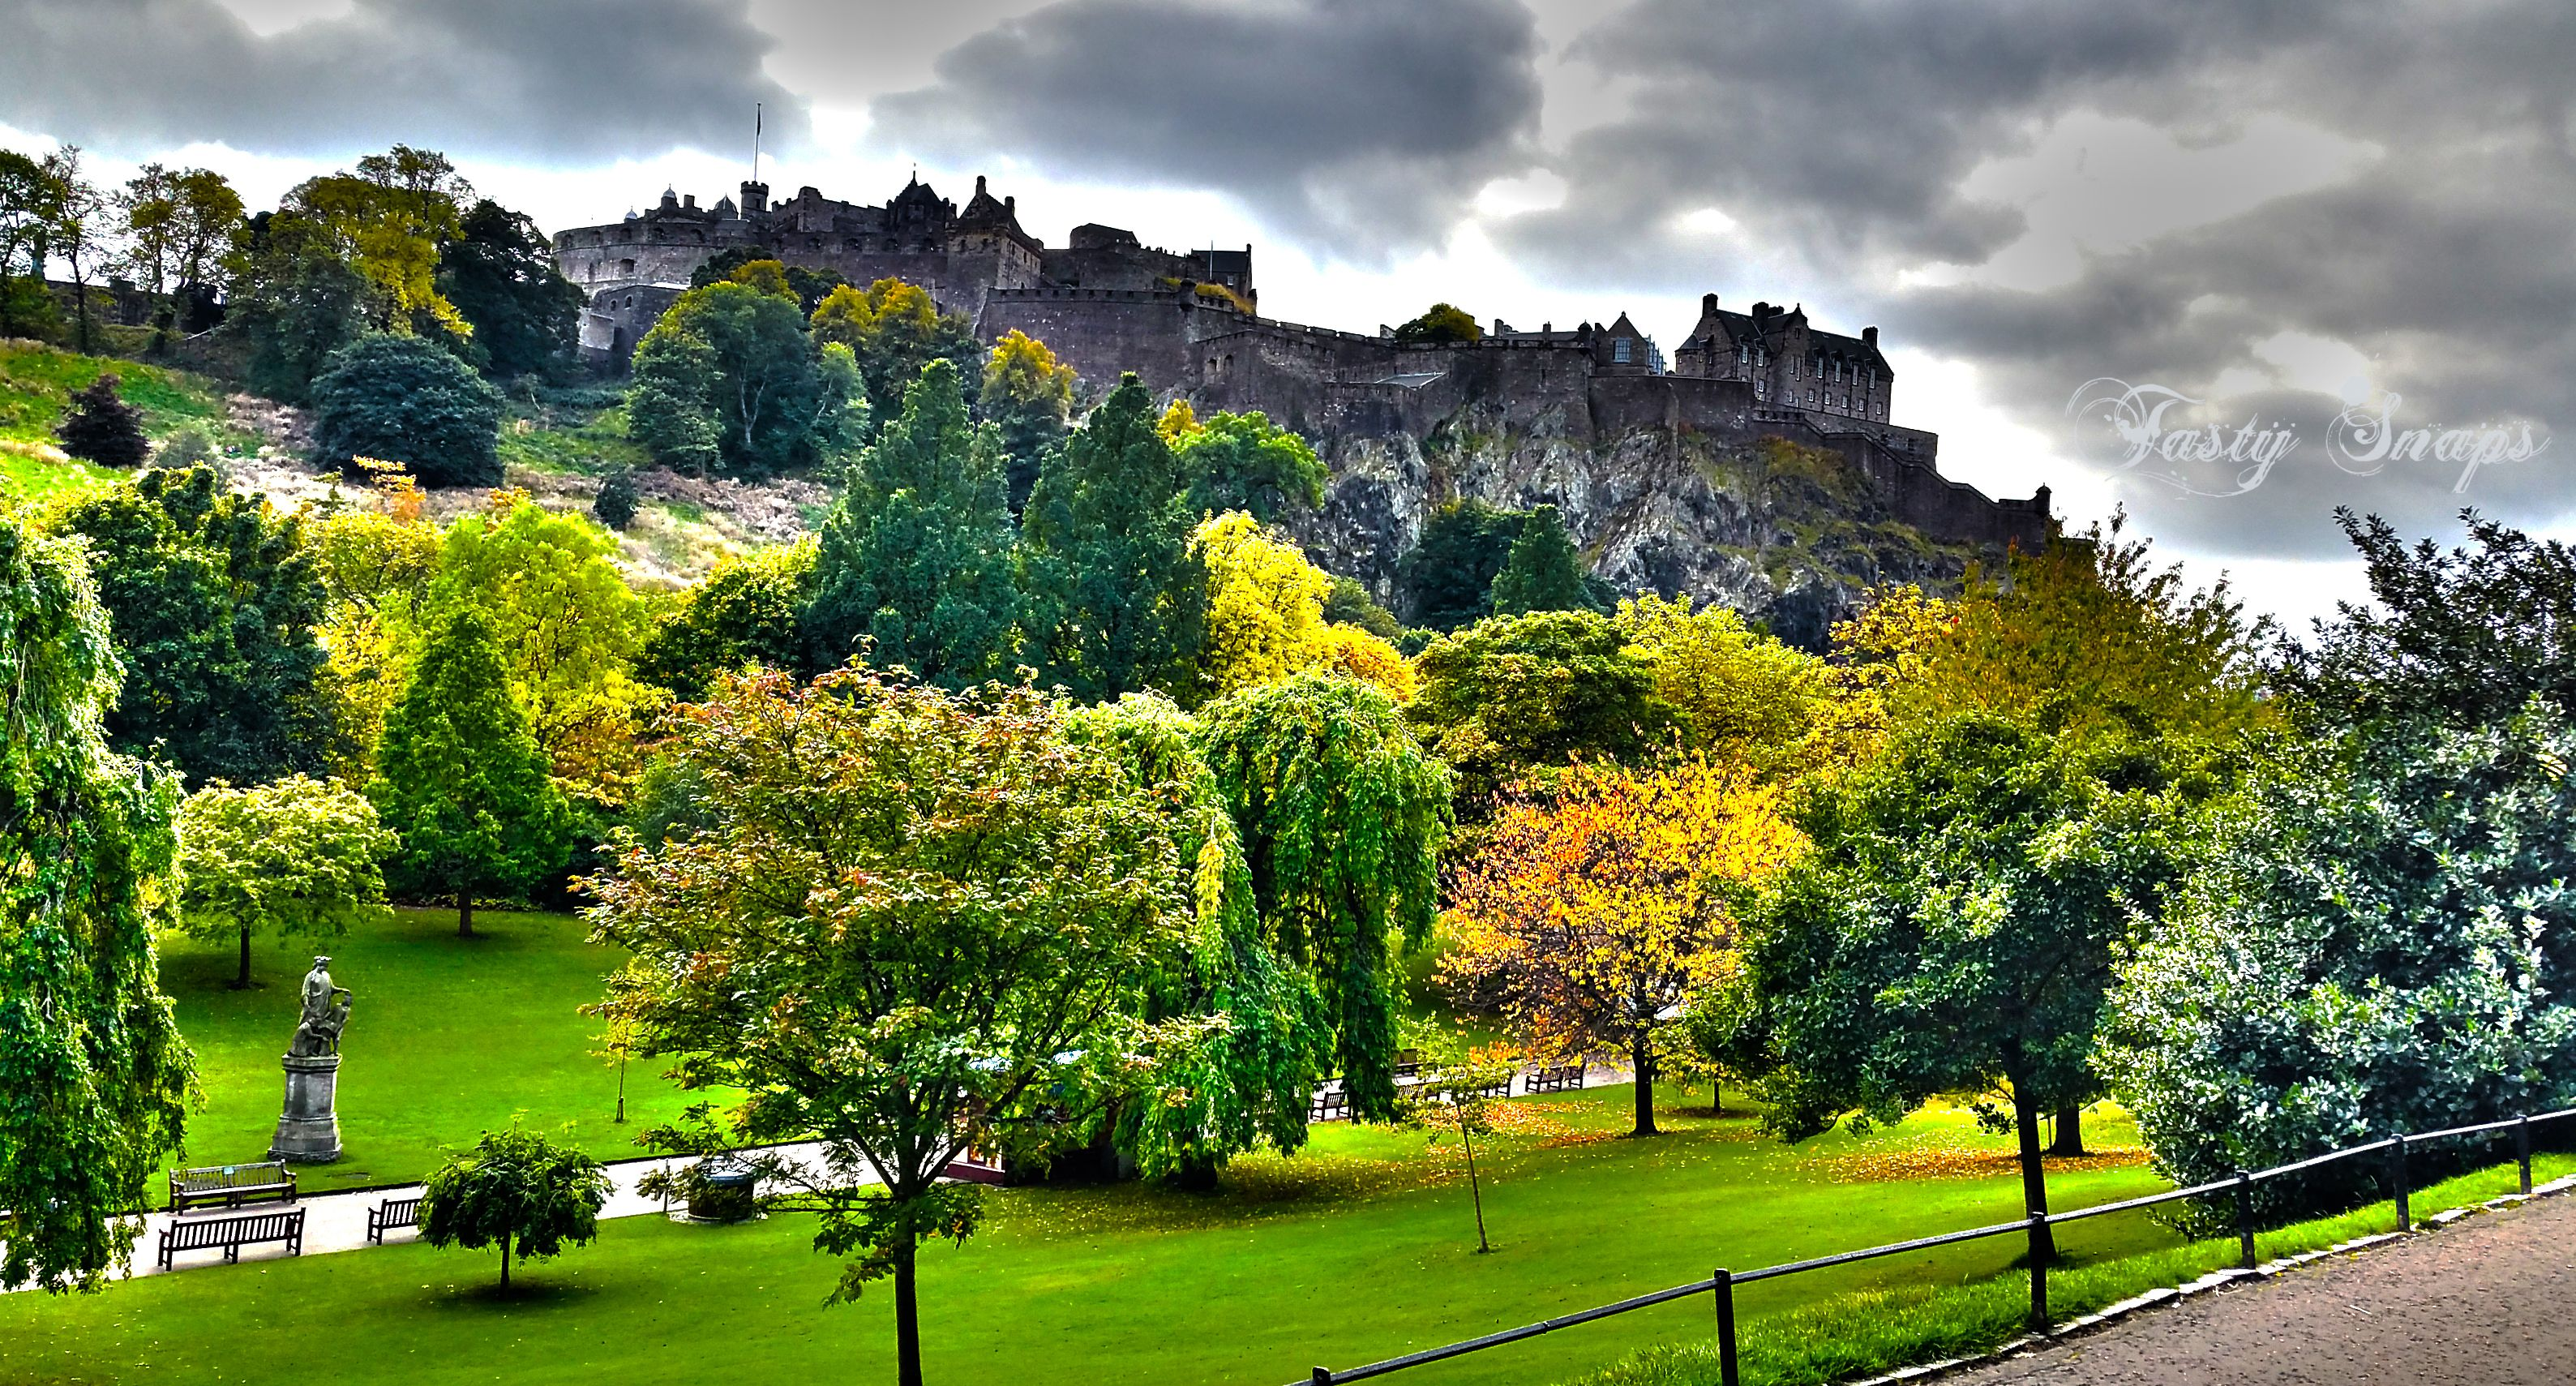 Download this photo of #Edinburgh #castle for free and use it for your blog, social network or commercial purpose. ----> http://viid.me/qm1cvn